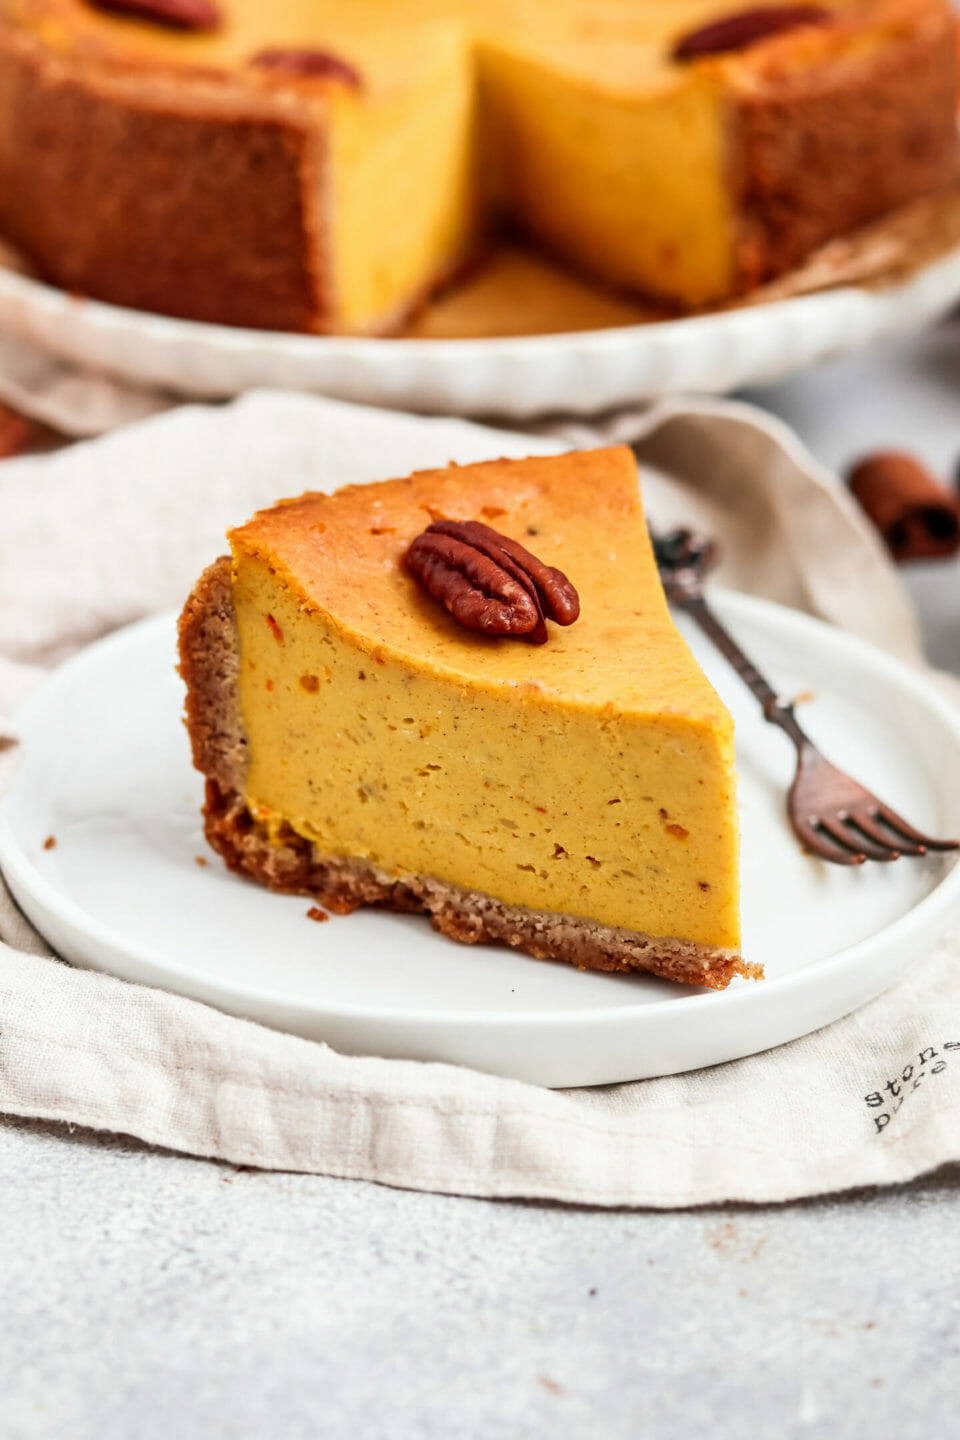 Pumpkin Cheesecake with Date Caramel.